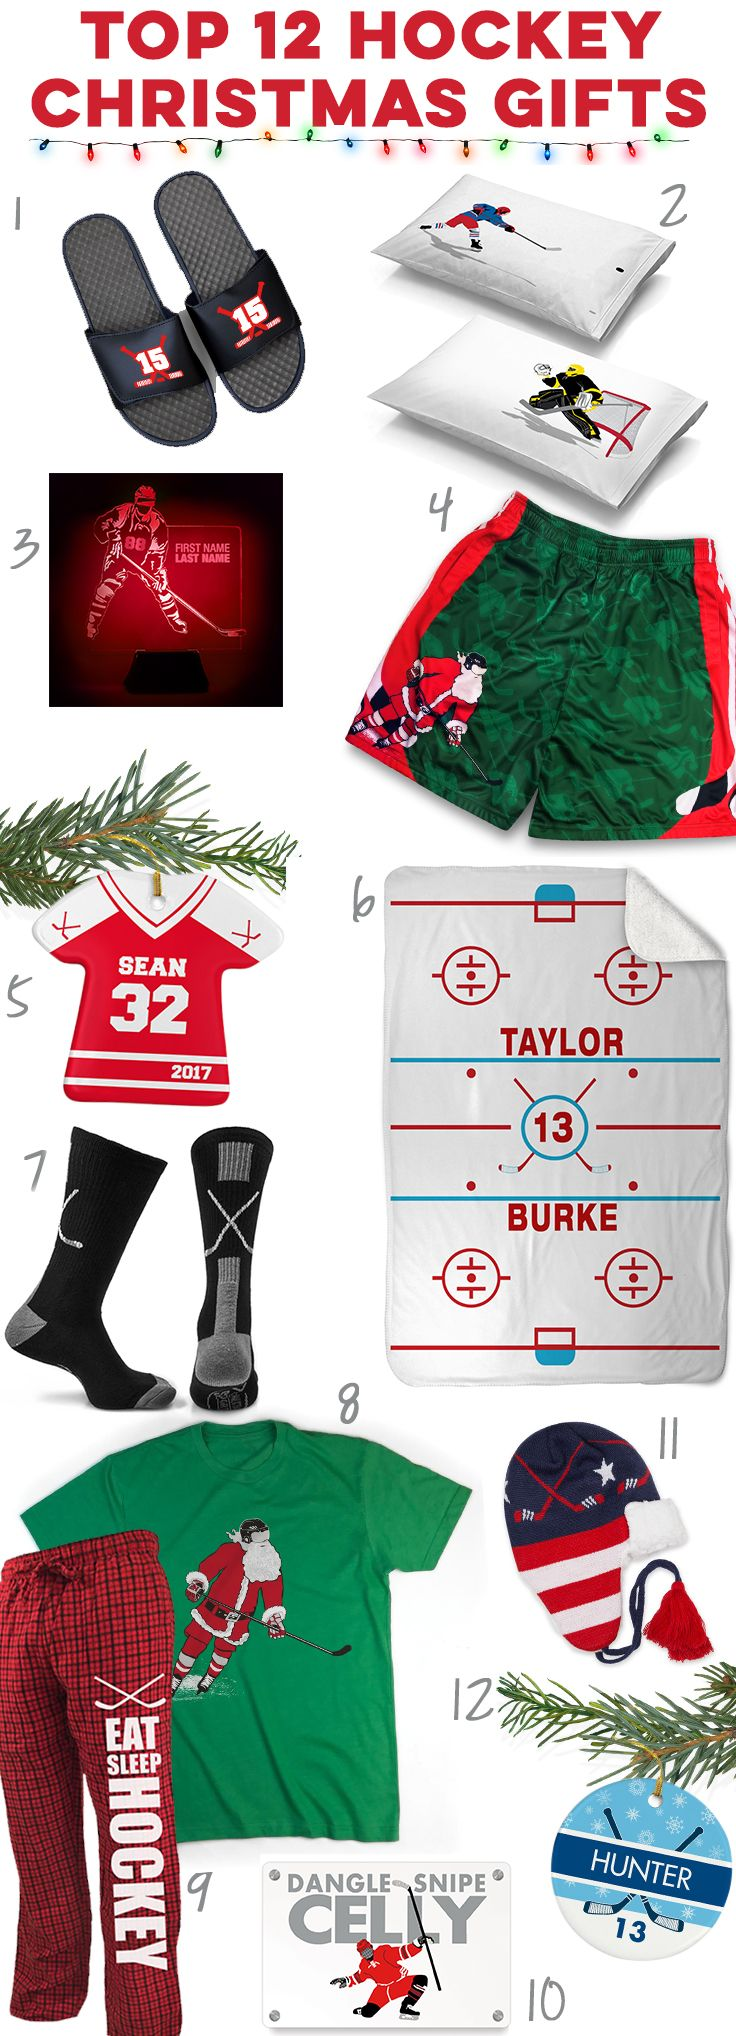 Check out these great holiday hockey gift ideas! Click to see more details on our top 12 hockey player gift ideas. Unique hockey Christmas gifts you can't find anywhere else!